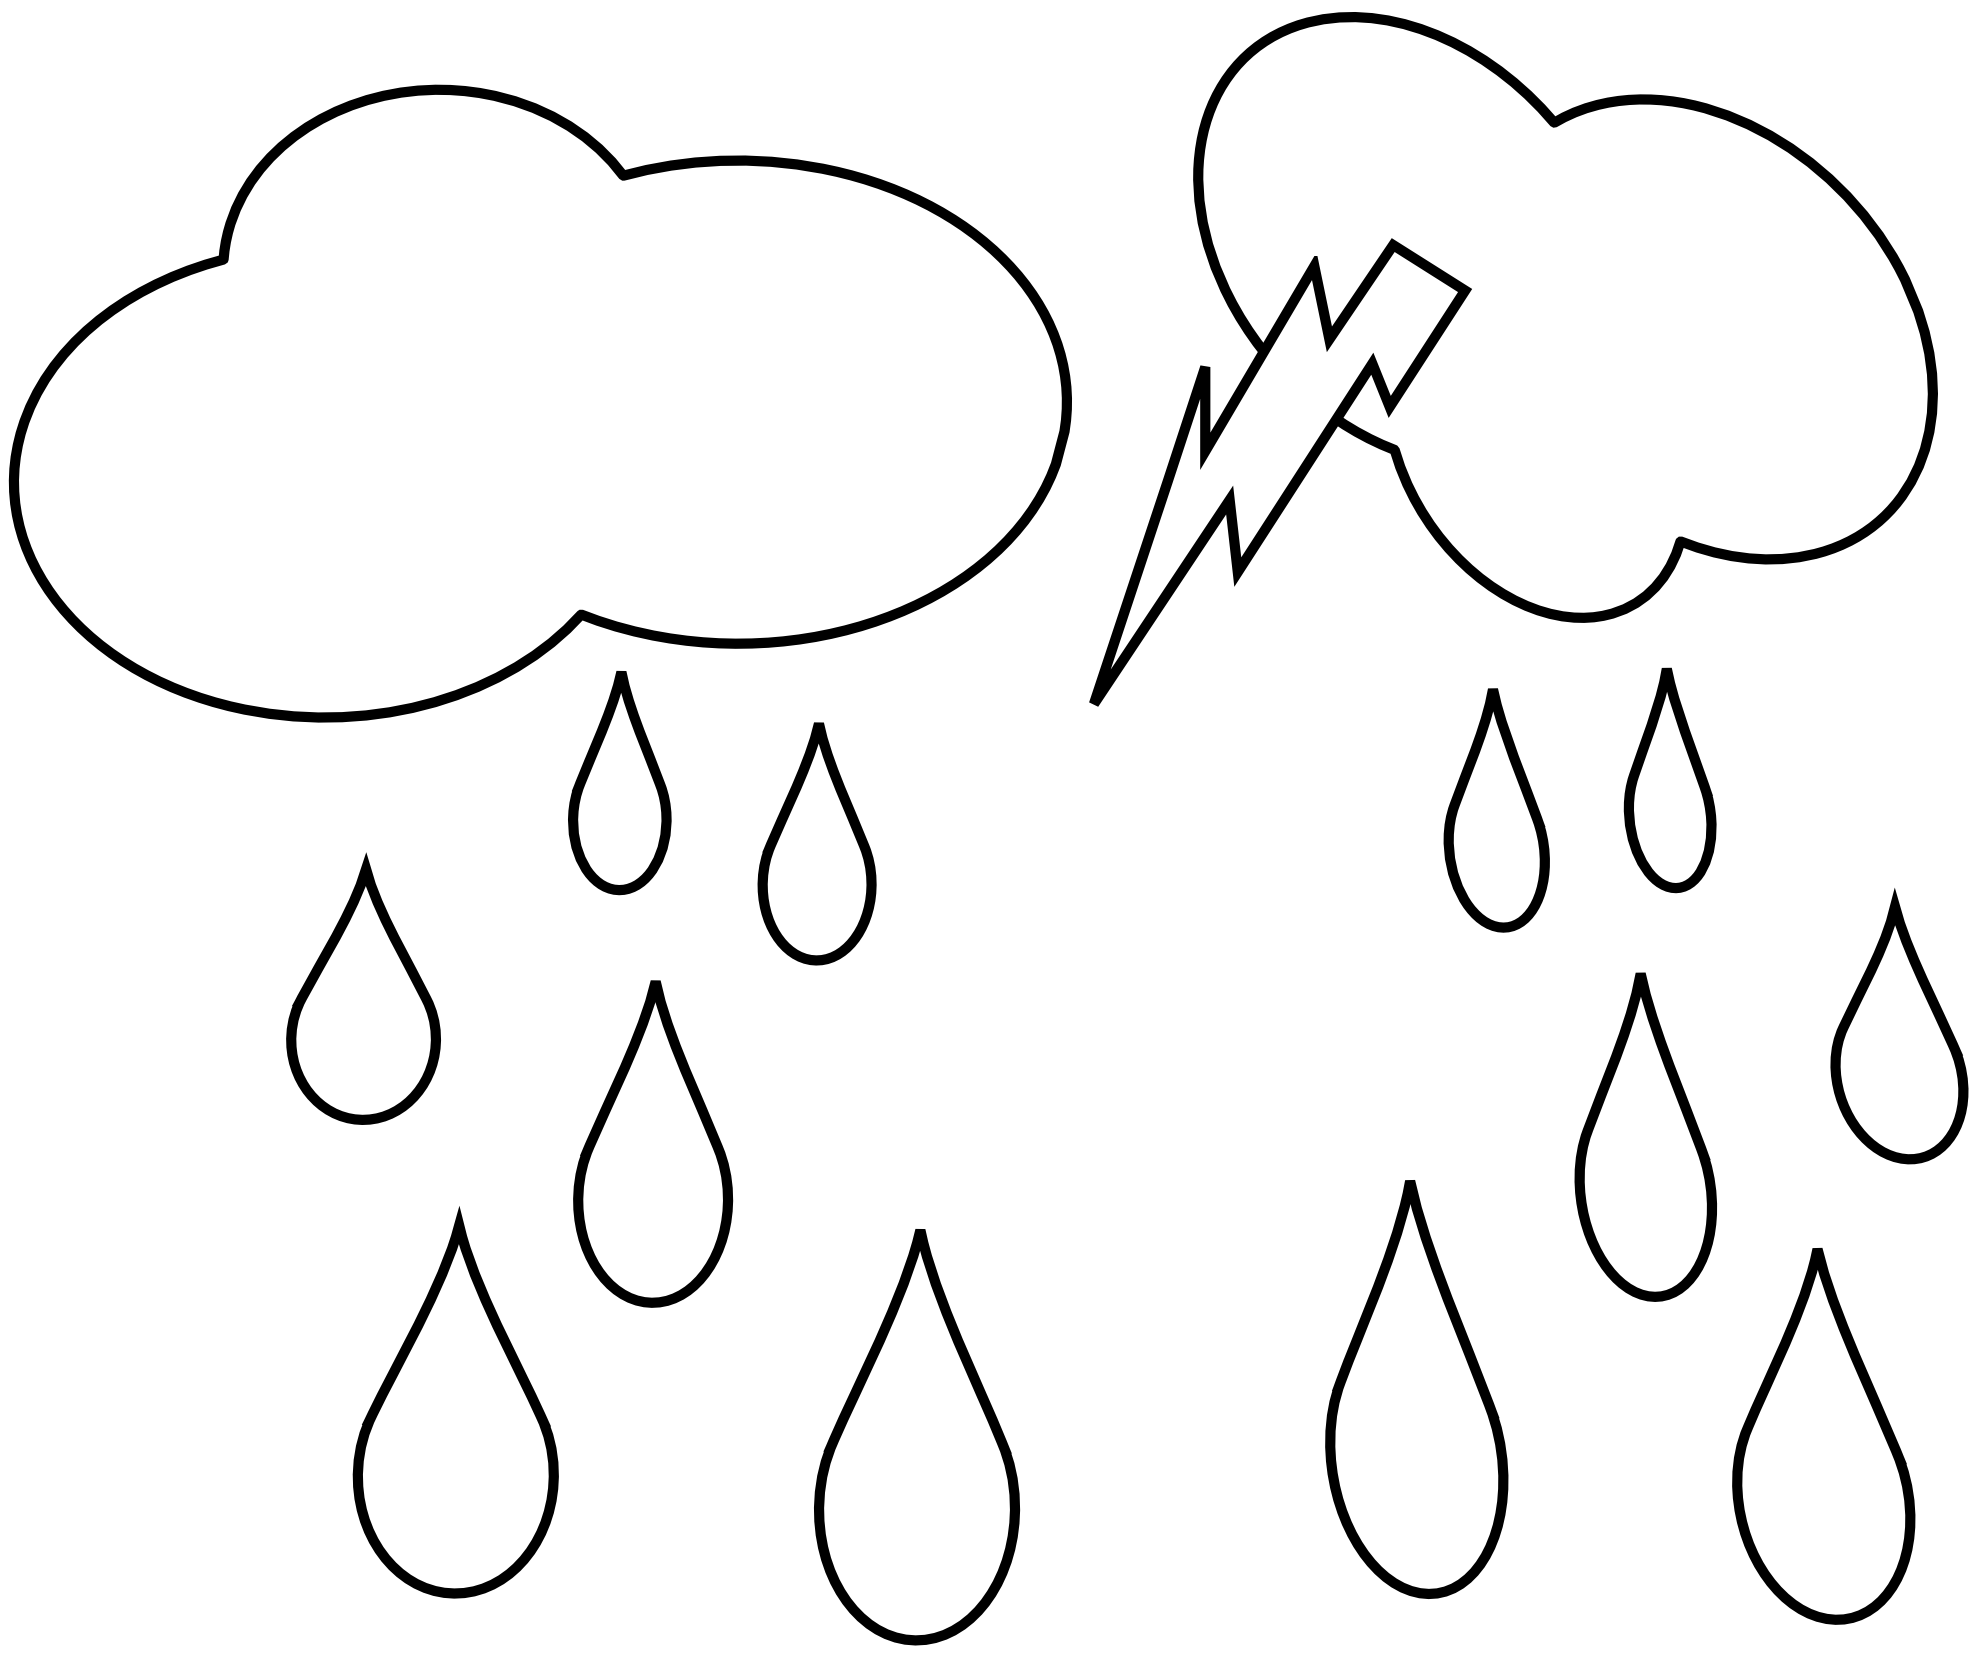 Raindrop clipart cloudy with. Rain cloud black and